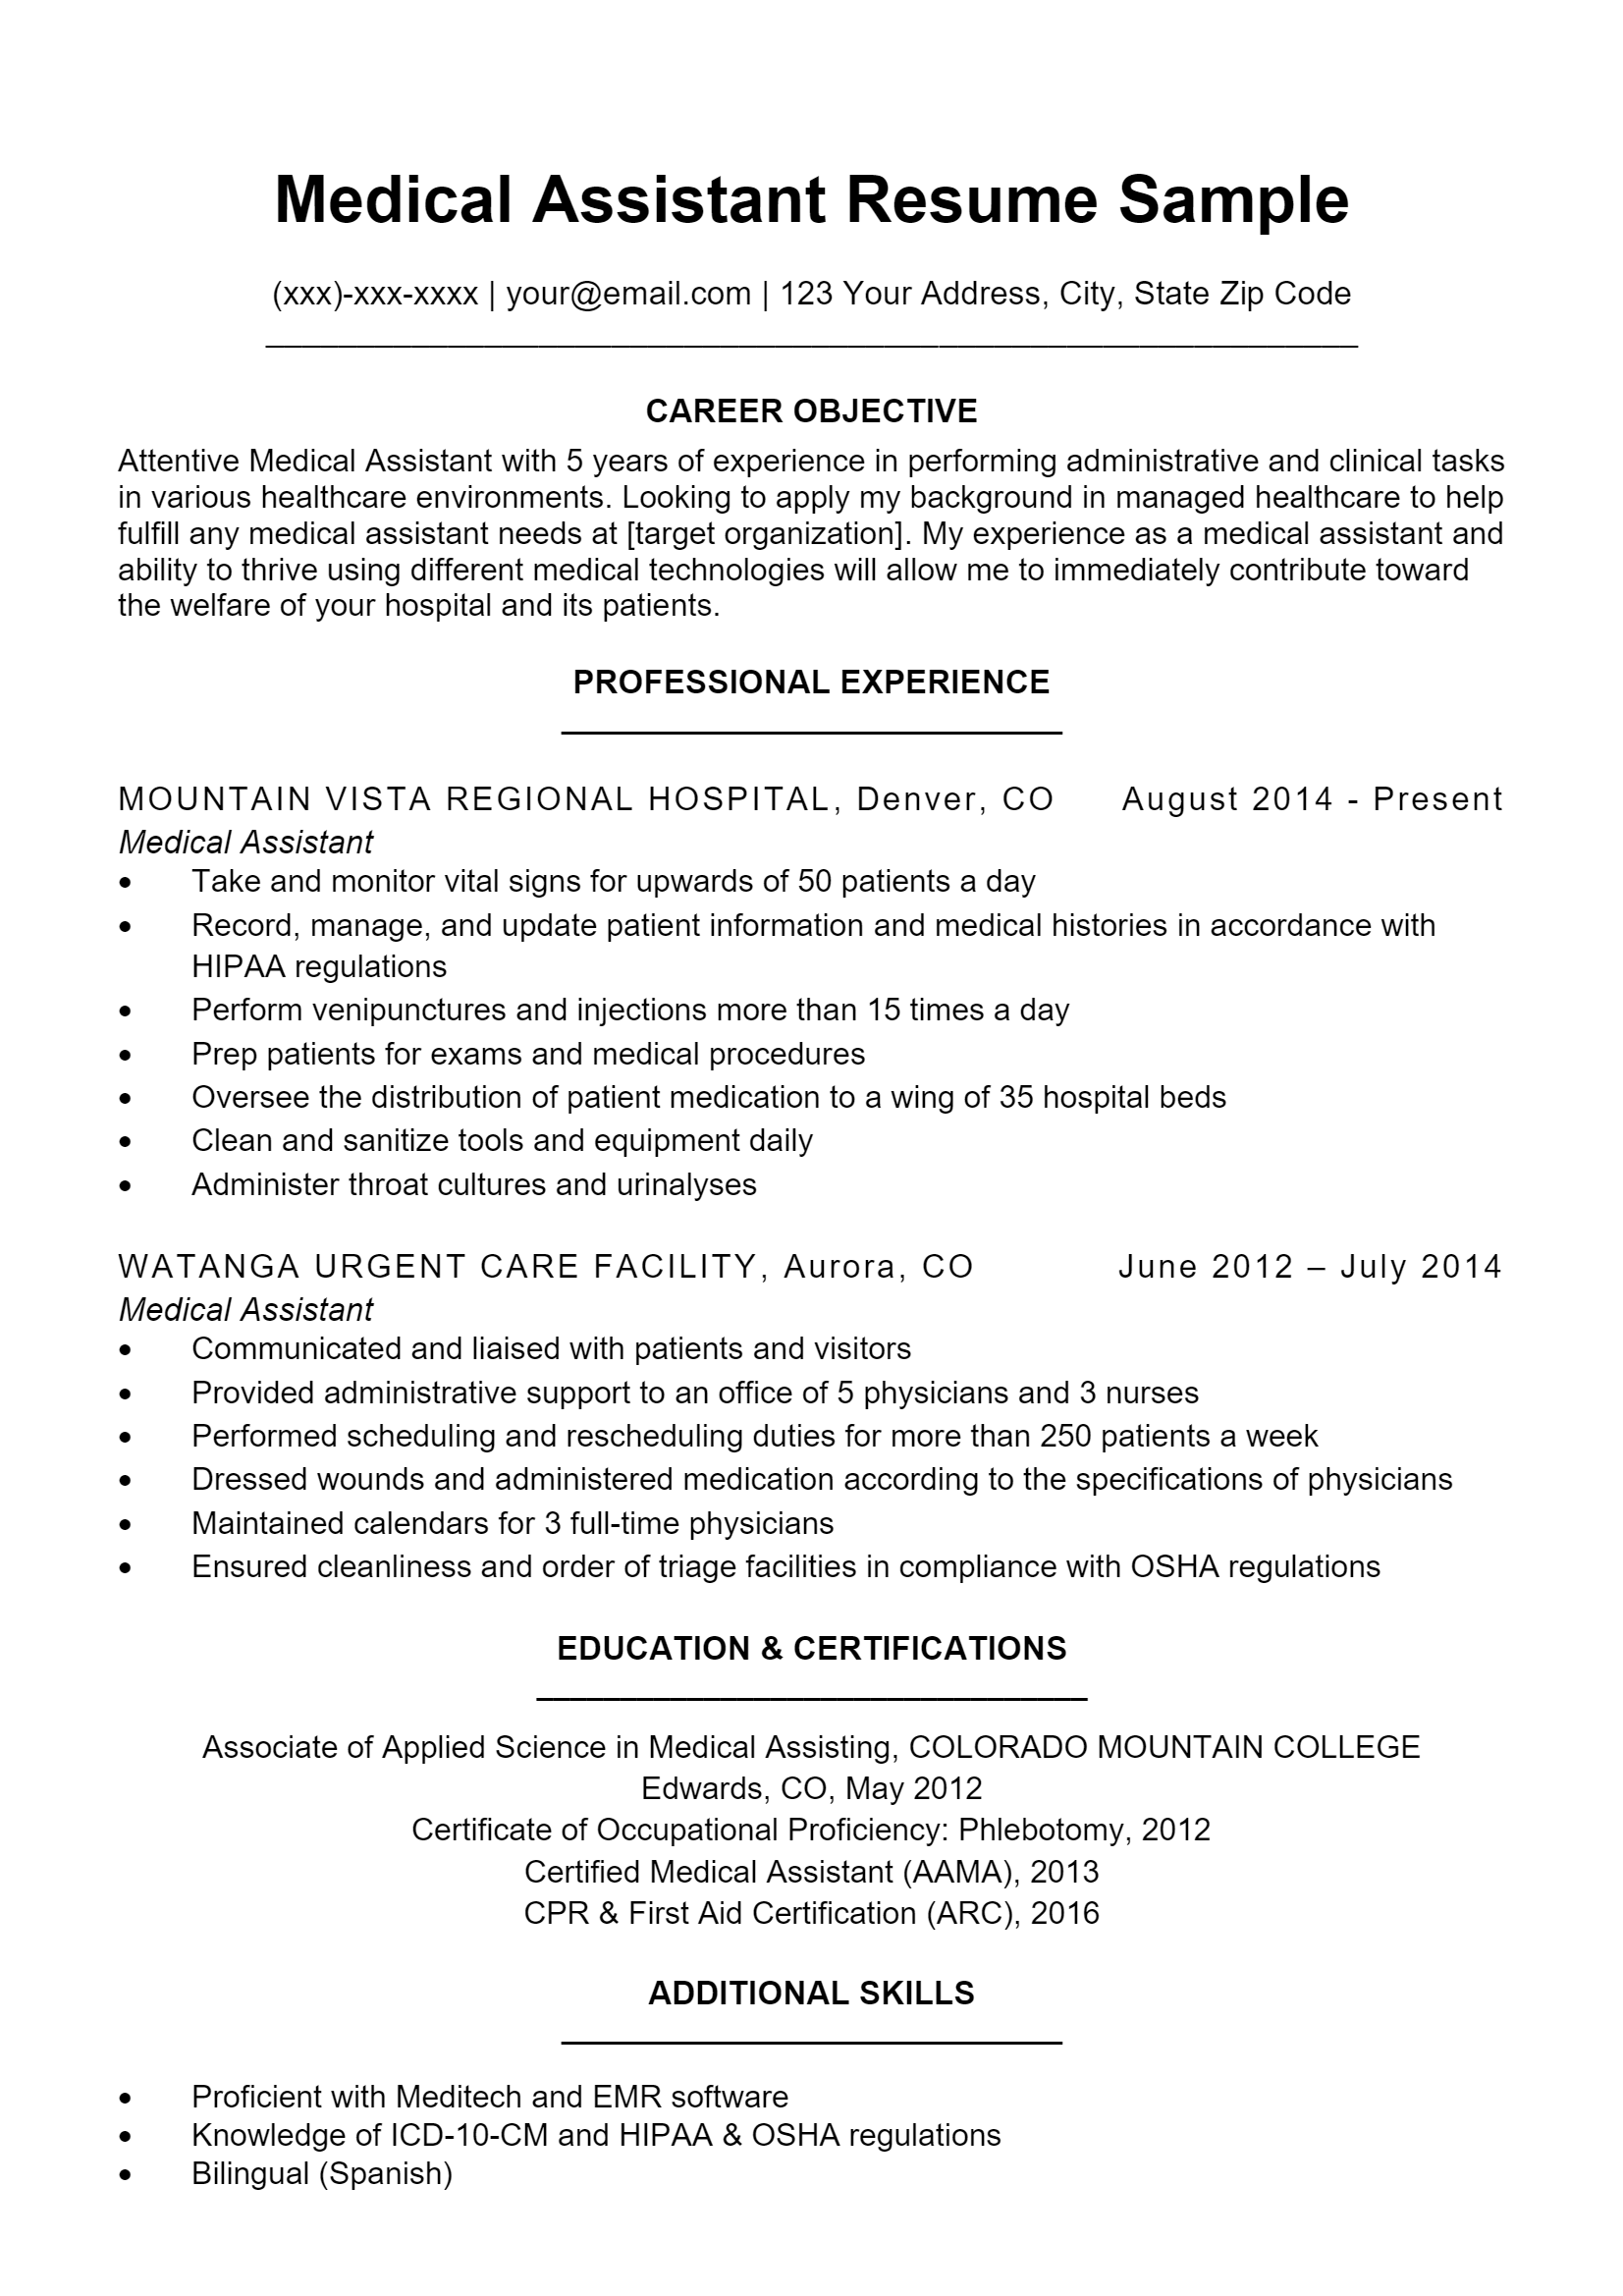 Medical Assistant Resume .Docx (Word)